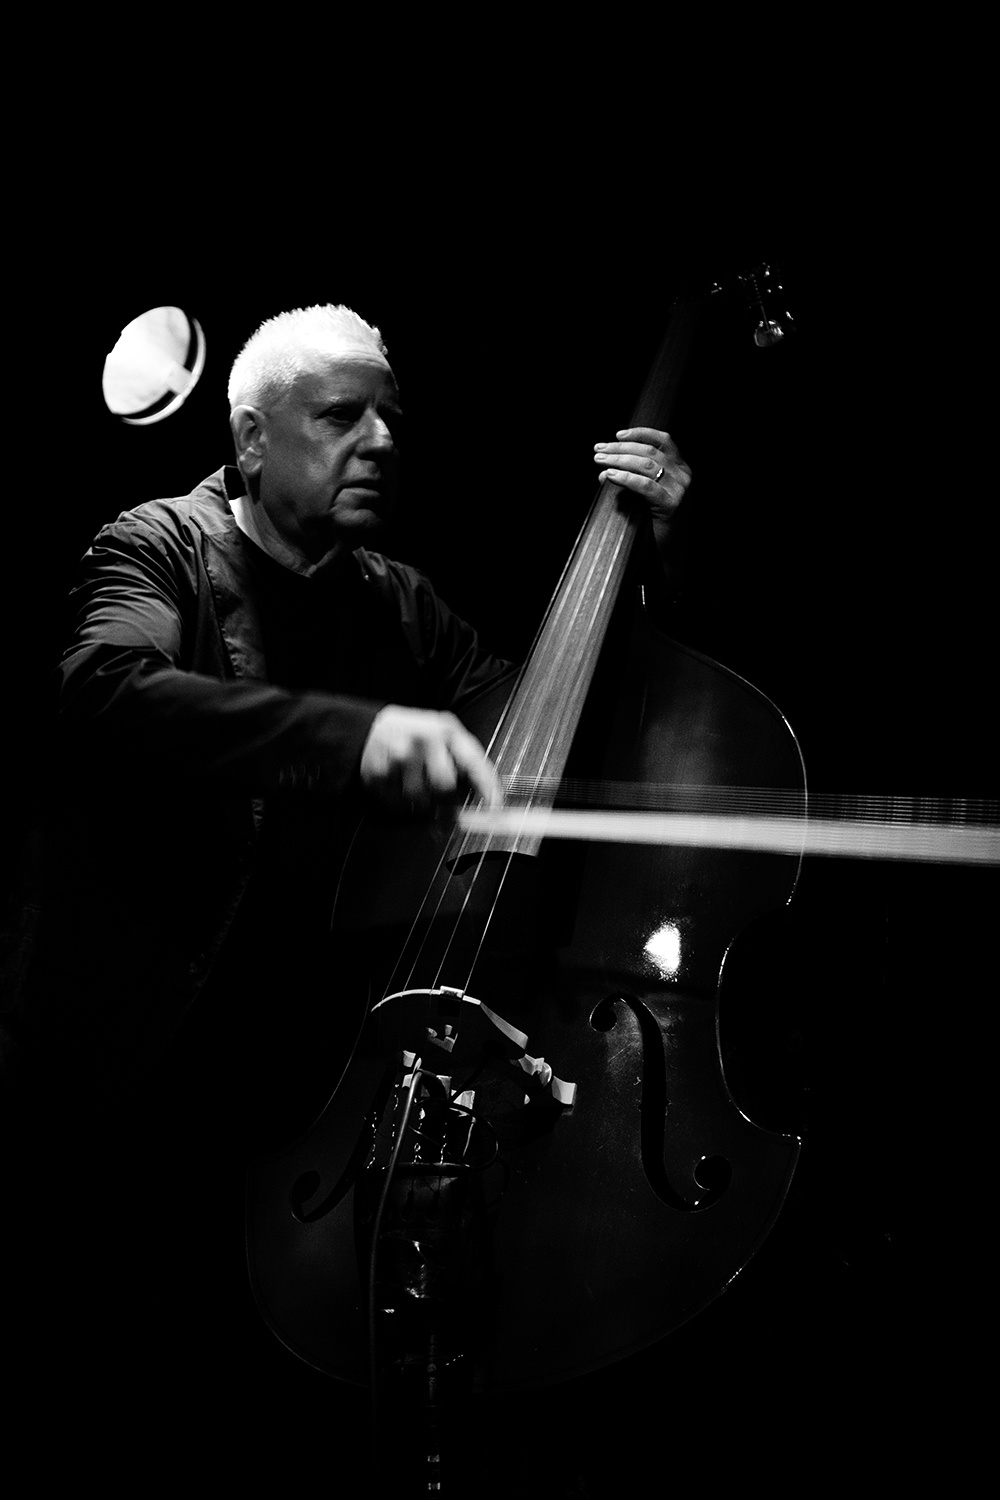 Arnold Dreyblatt & The Orchestra of Excited Strings by Laurent Orseau - Les Ateliers Claus - Brussels, Belgium #5